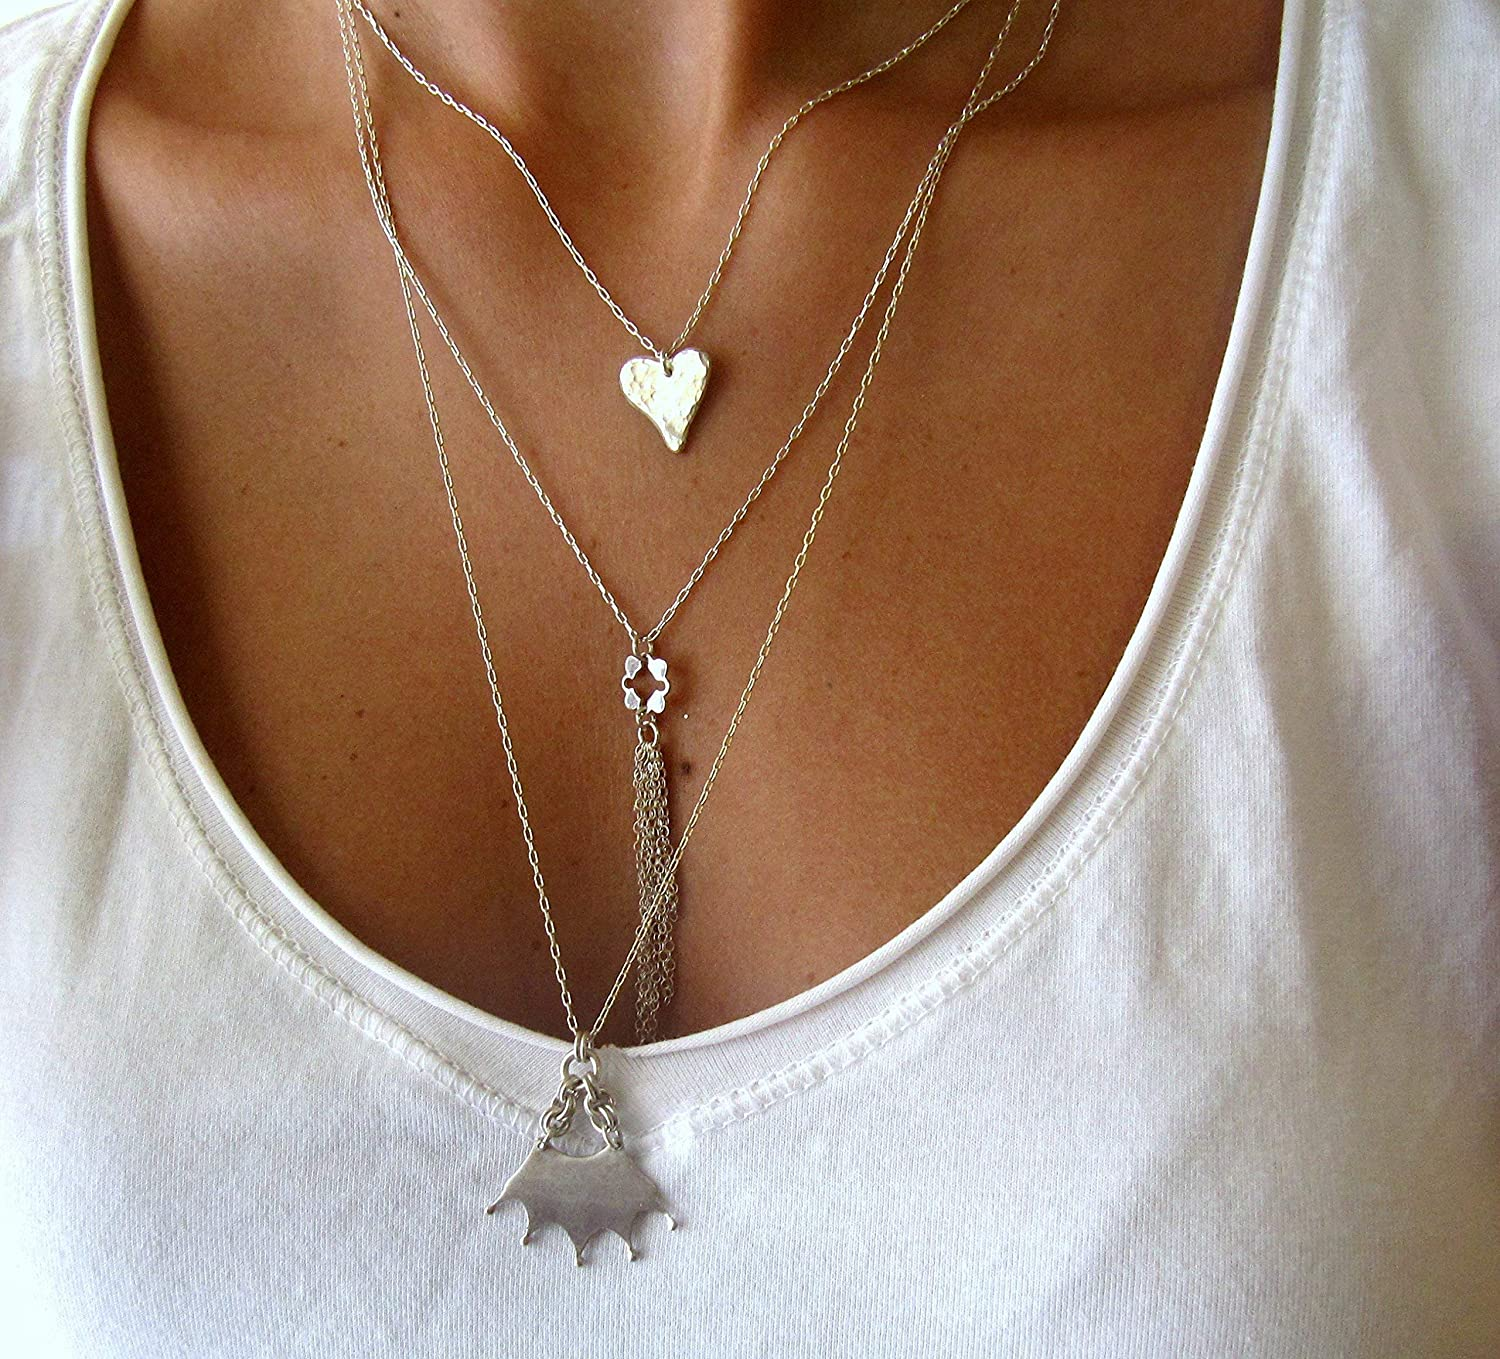 Triple layer Sterling Silver Necklace.